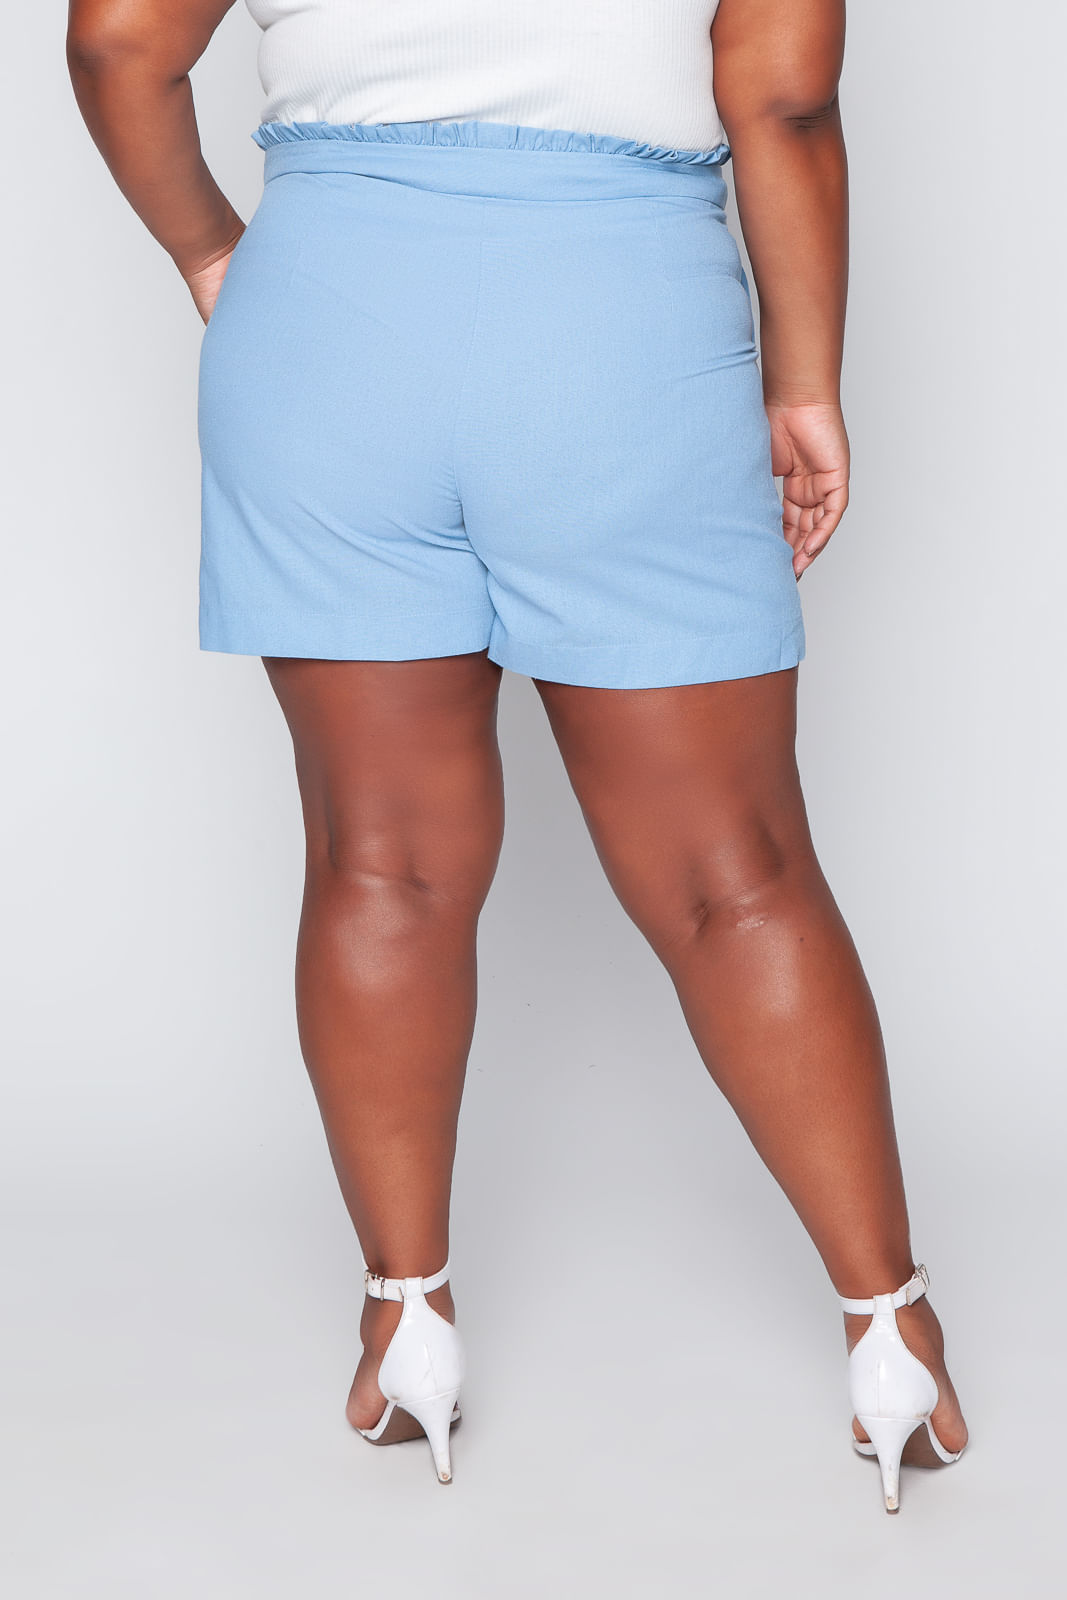 T039_Shorts_Plus_Size_Clochard_Linho_Azul_Celeste_3